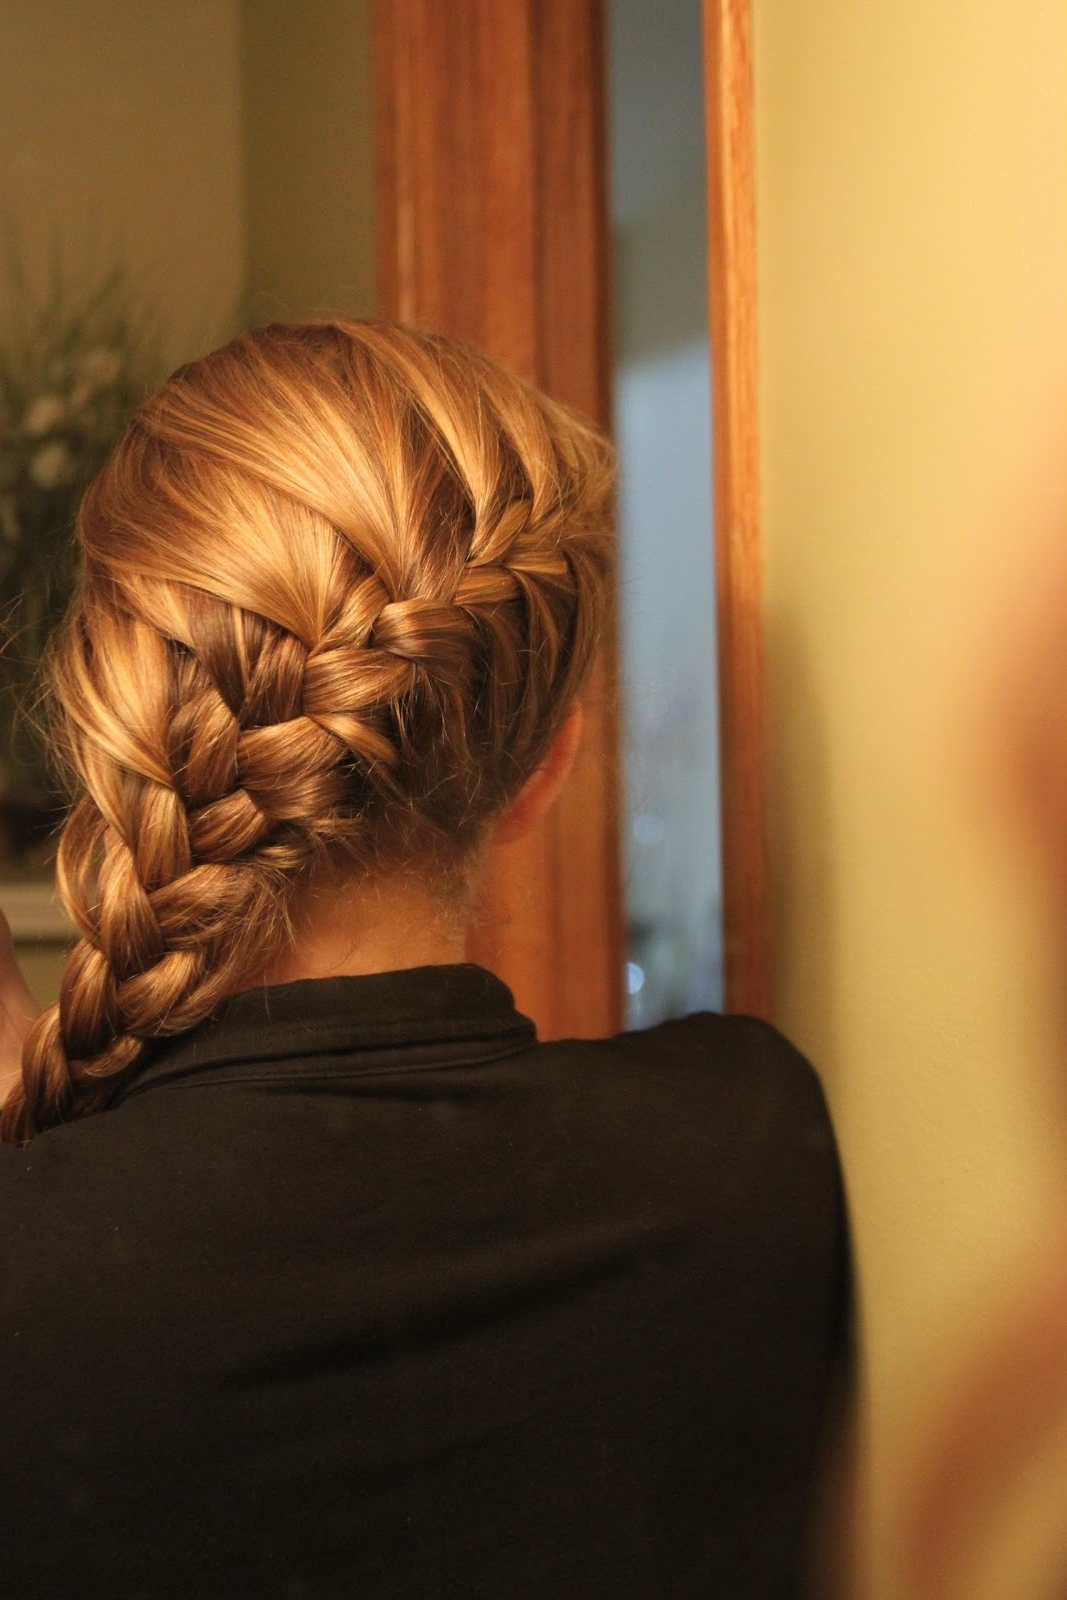 Kara's Creative Place: My New Hairstyle Standby, Diagonal French Braid Throughout Most Up To Date Diagonal French Braid Hairstyles (View 9 of 15)